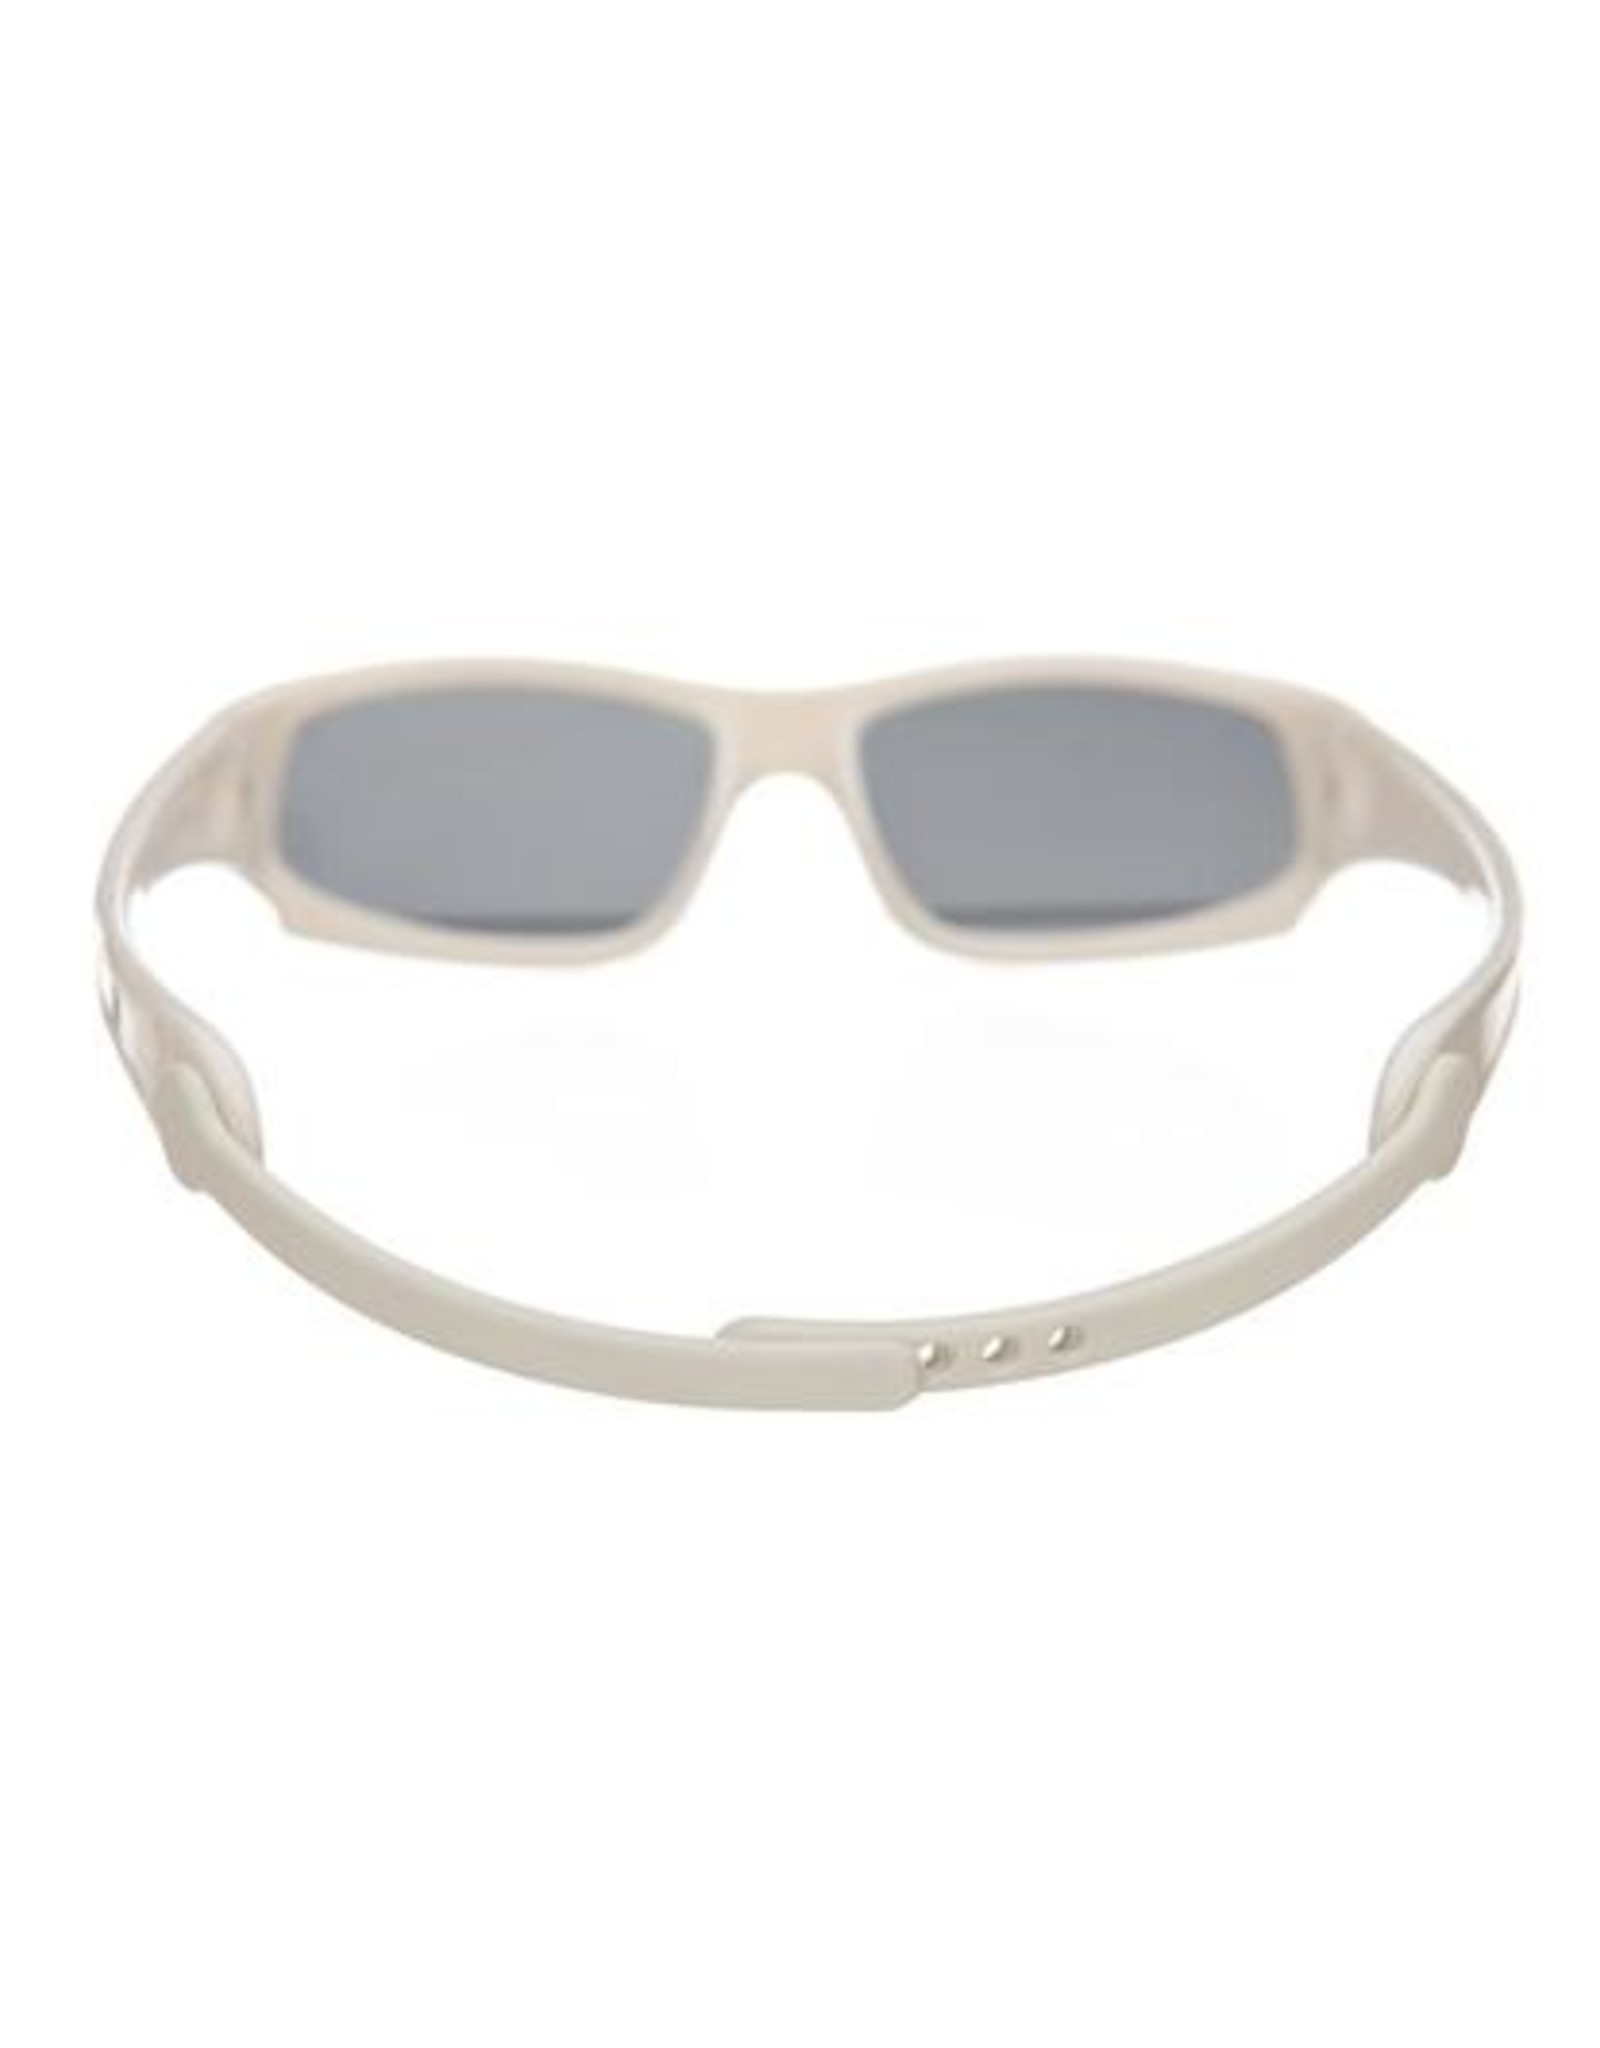 Stonz Baby Sport Sunnies - Assorted Colors